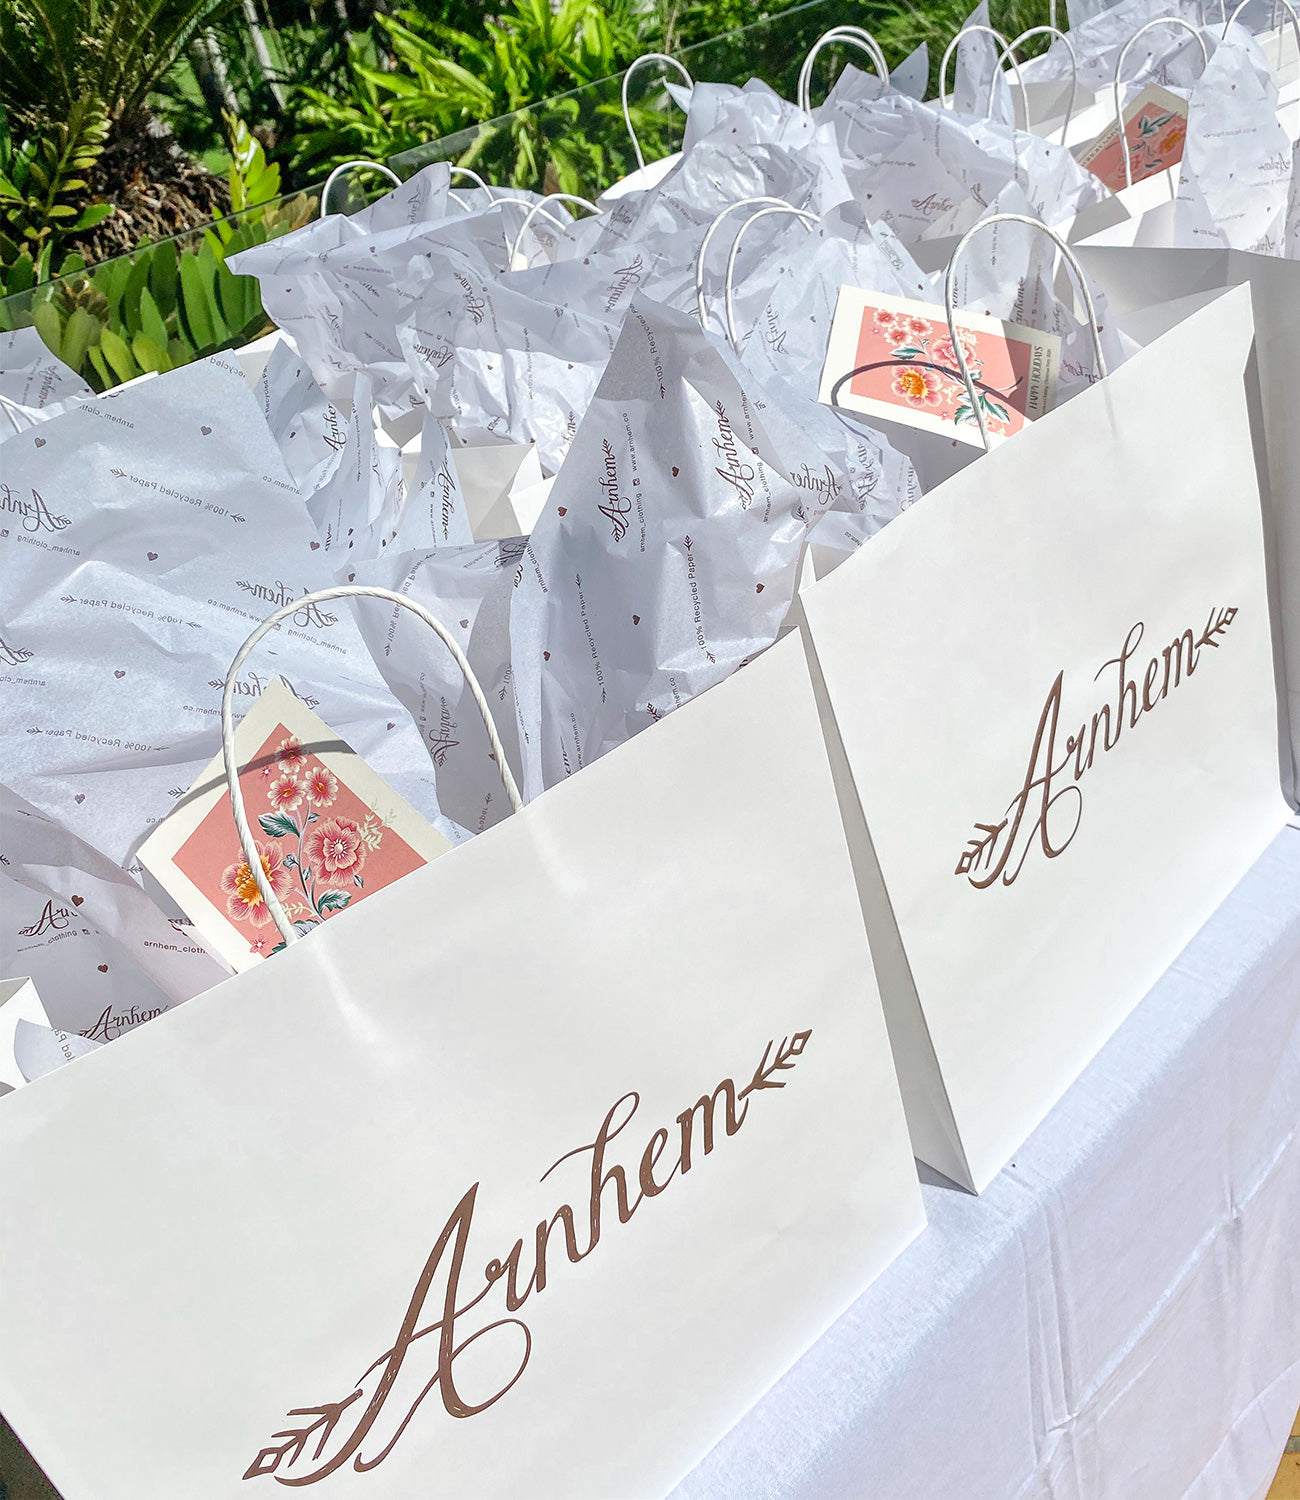 Arnhem goody bags with gifts from sustainable Byron Bay brands